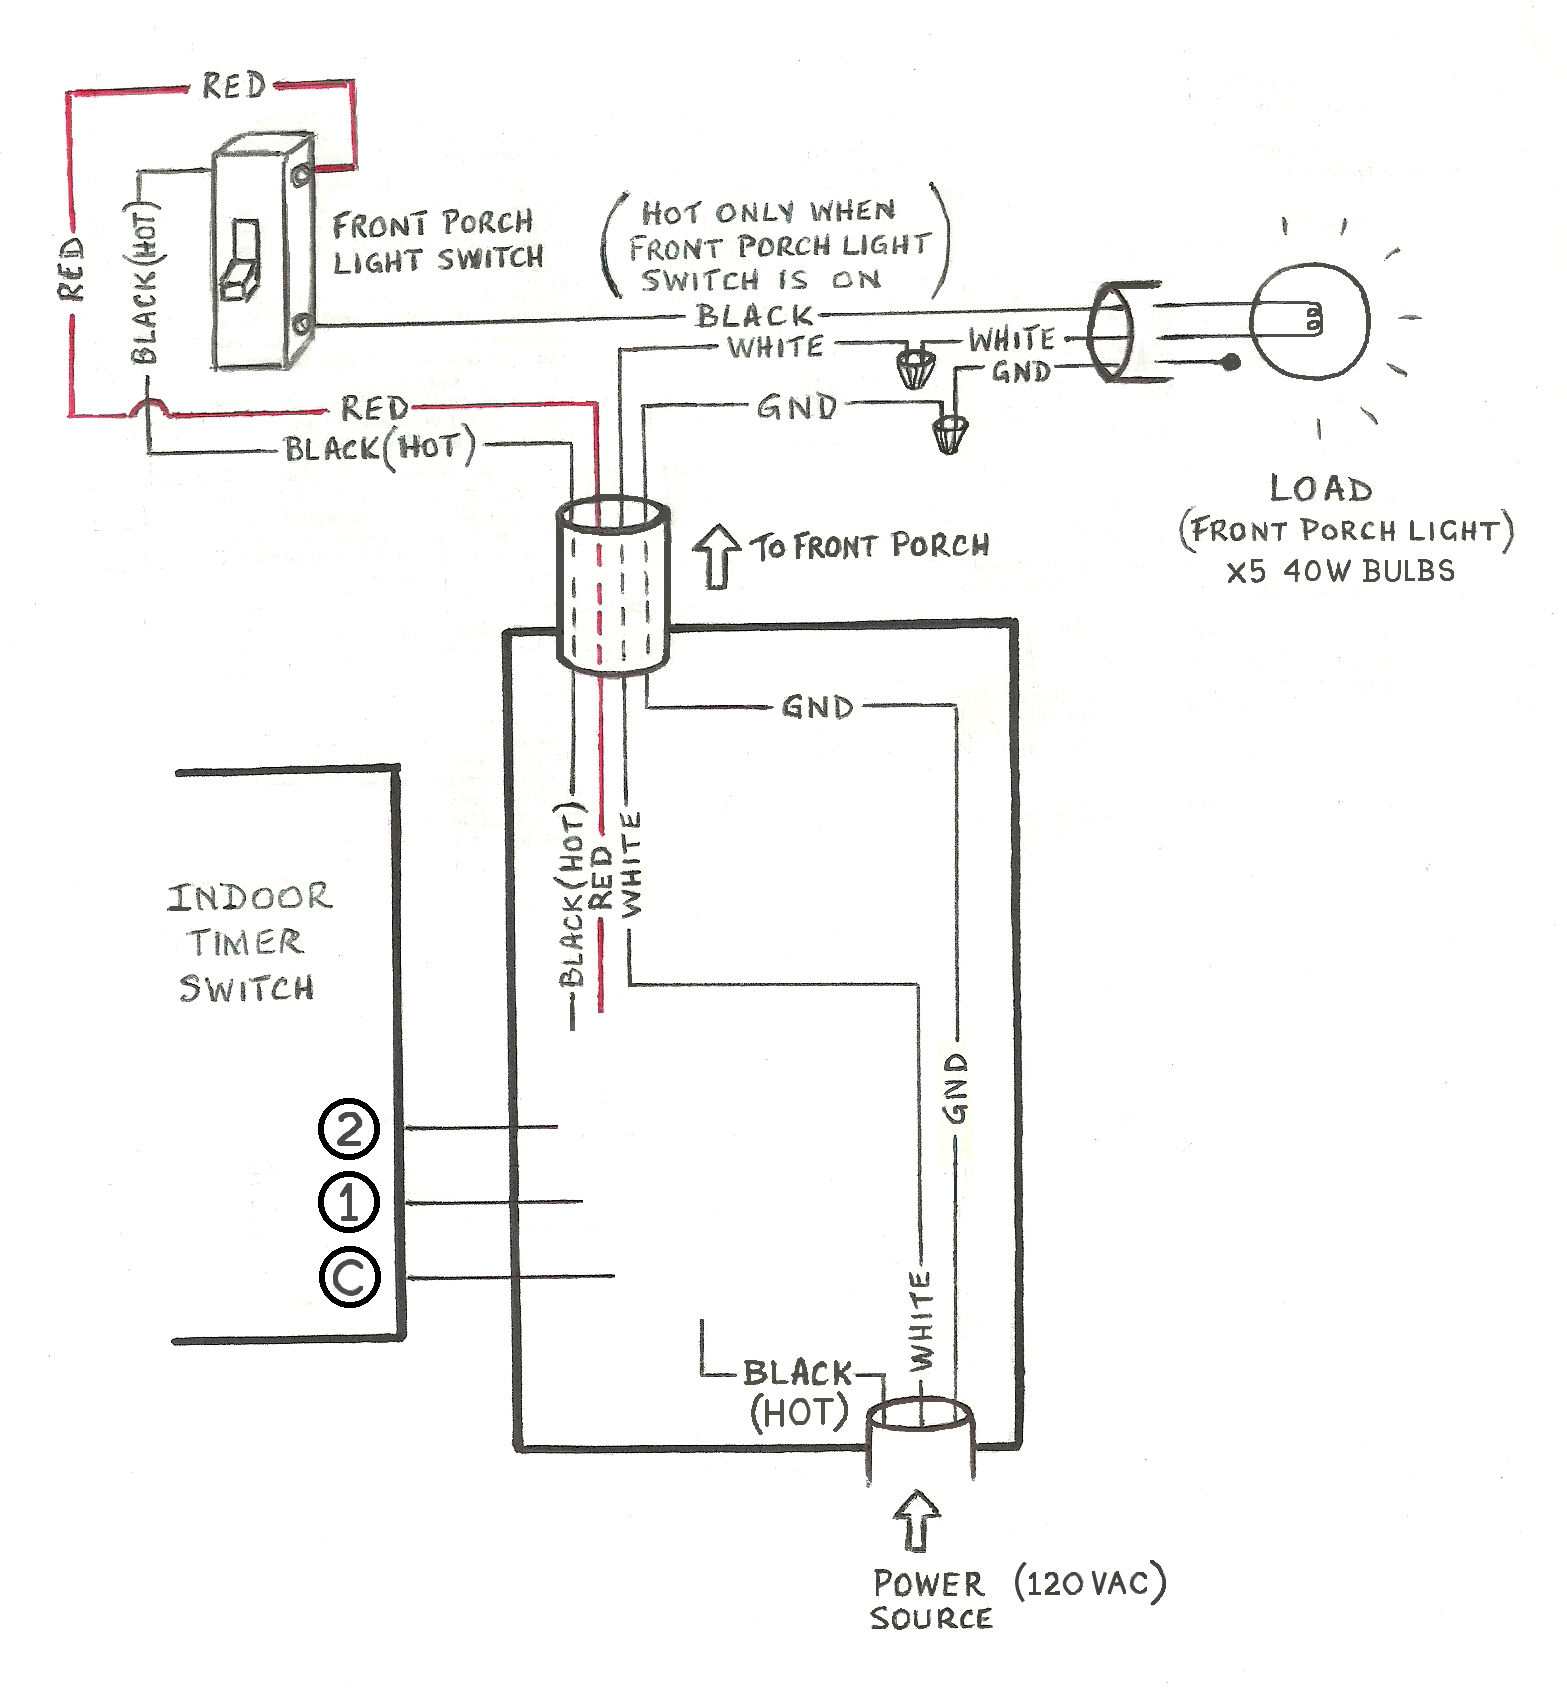 Limitorque L120 20 Wiring Diagram 33 Wiring Diagram Images John Deere Gator  Fuel Pump Wiring Diagram Limitorque L120 40 1ph Wiring Diagrams